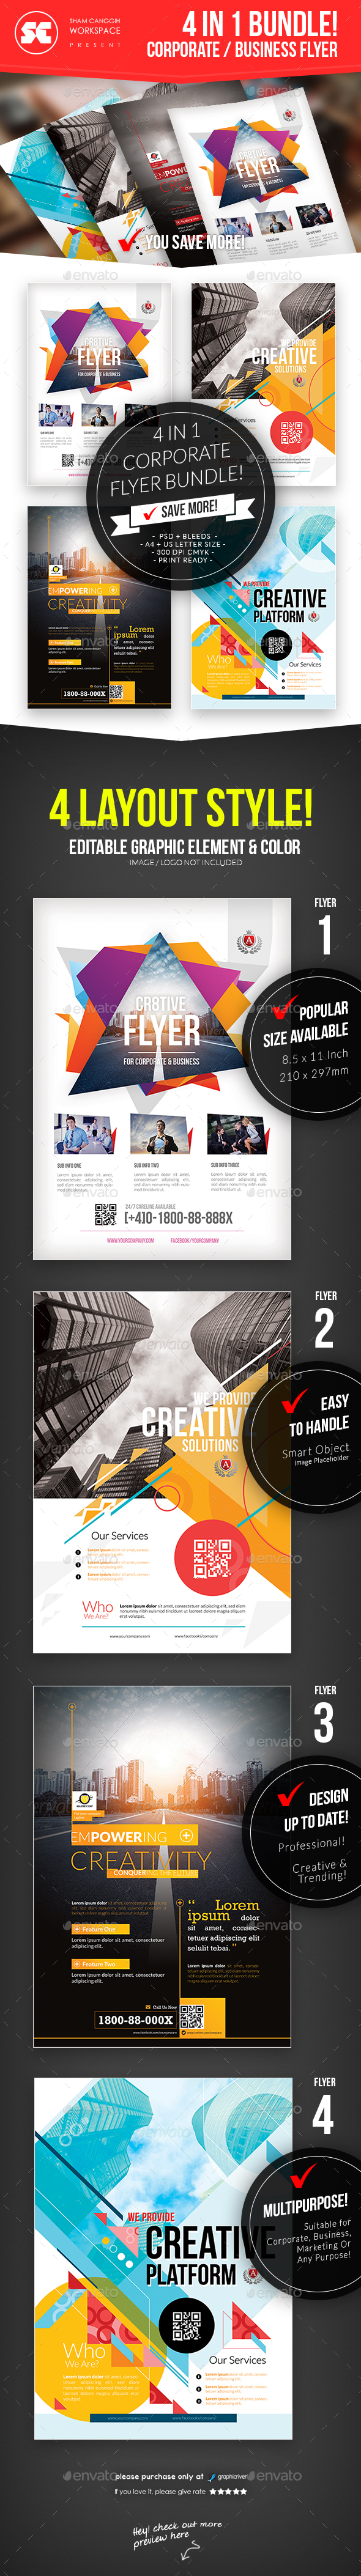 Corporate Business Flyer Bundle - Corporate Flyers